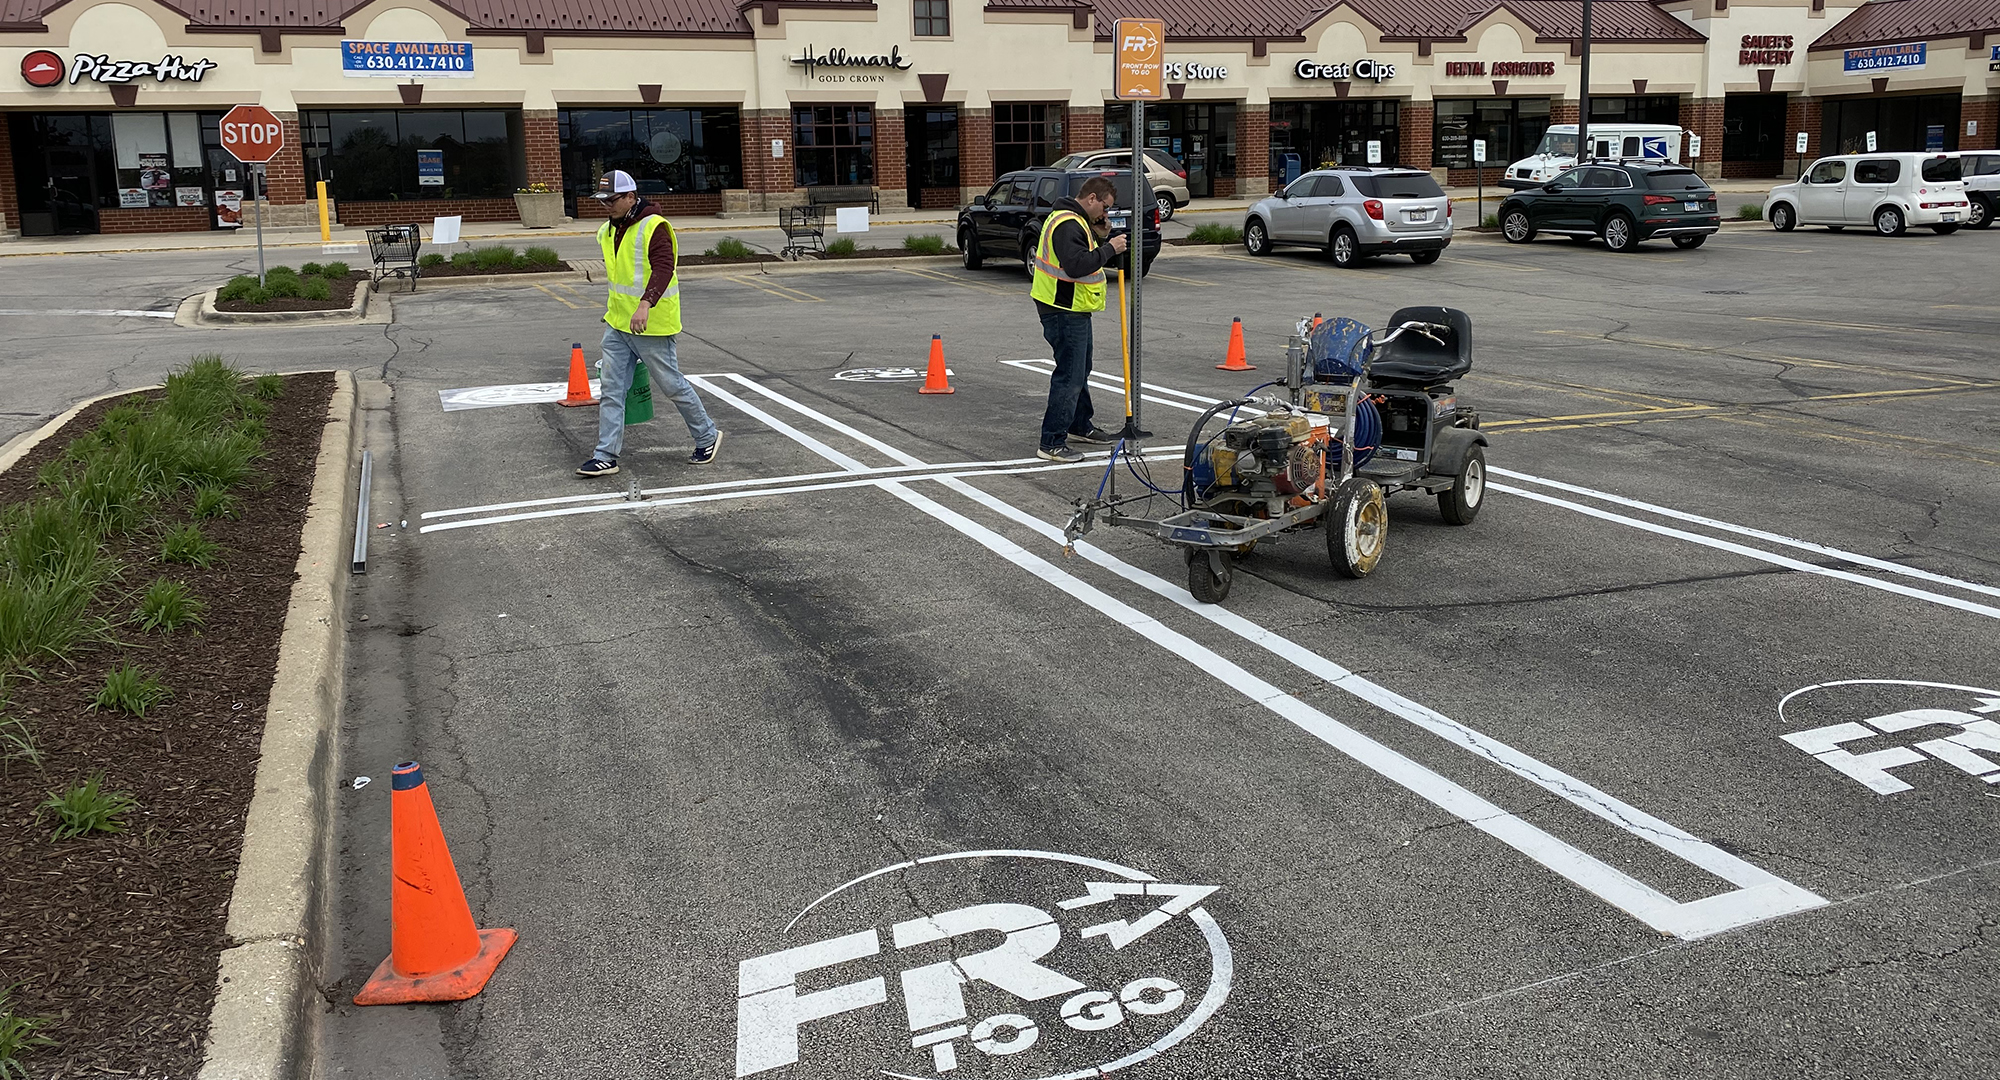 two gentleman painting the lines in the parking lot for curbside parking